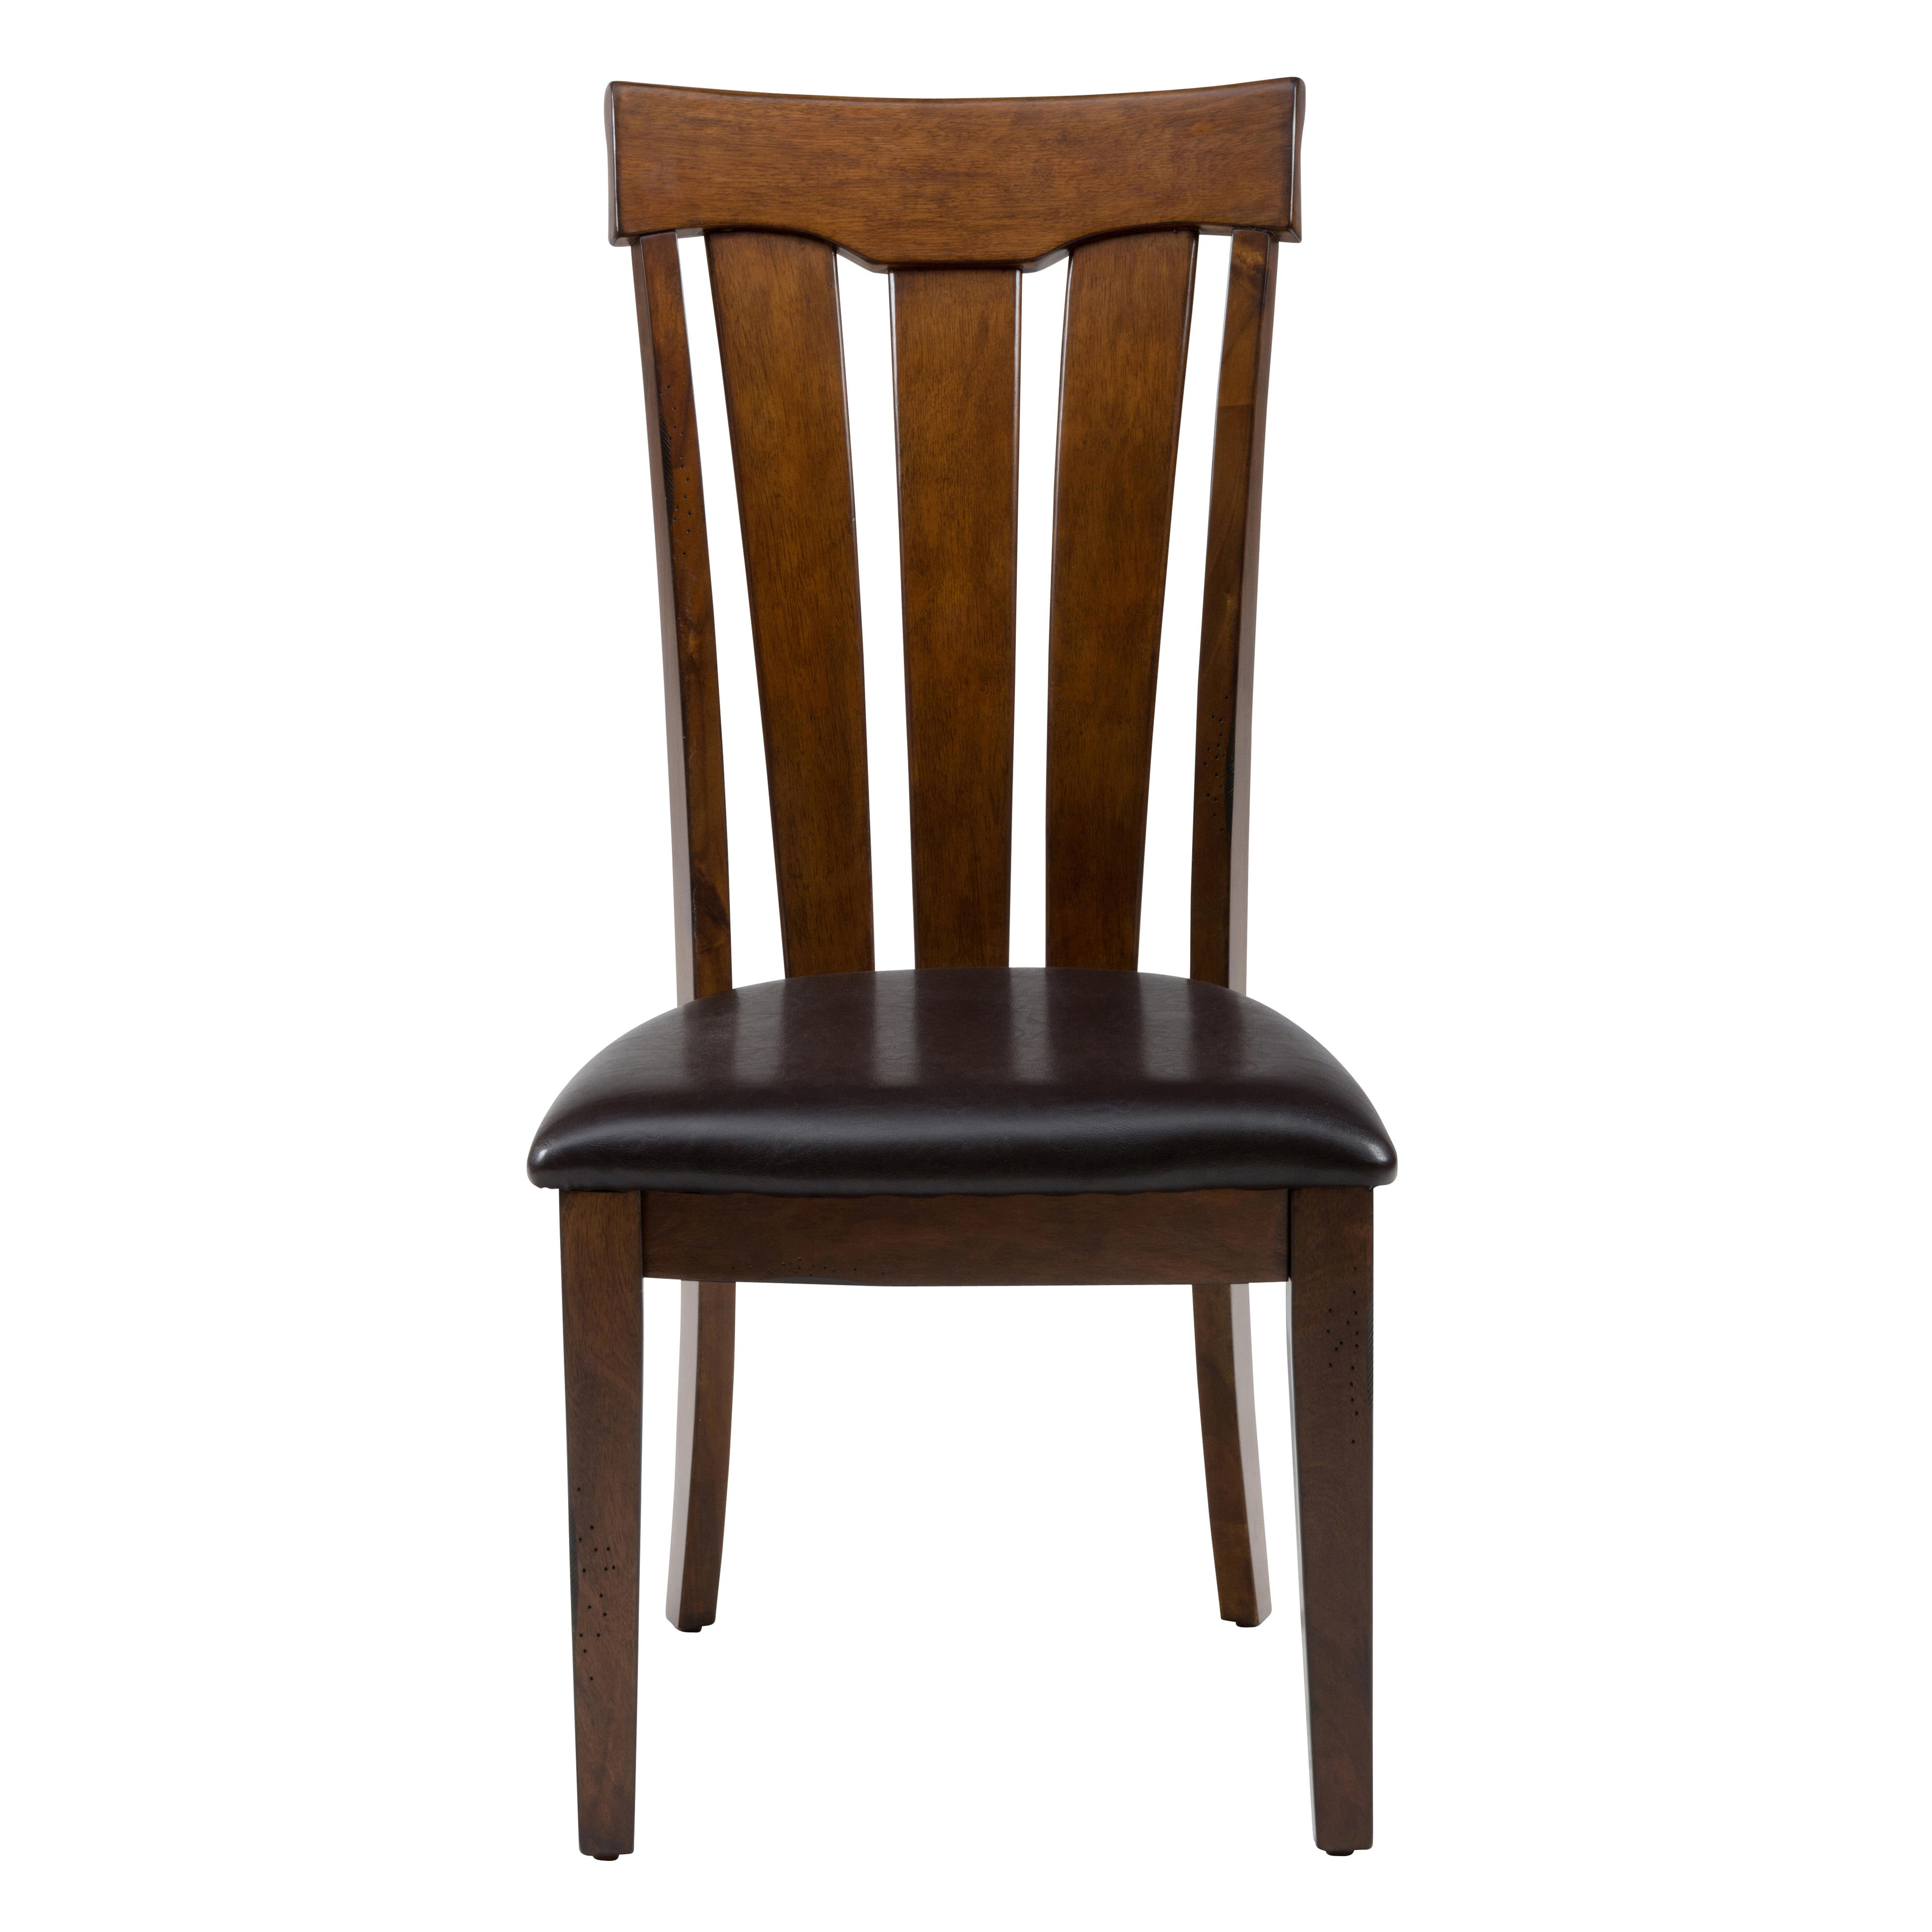 Jofran Plantation Slat Back Chair with Upholstered Seat - Item Number: 505-423KD